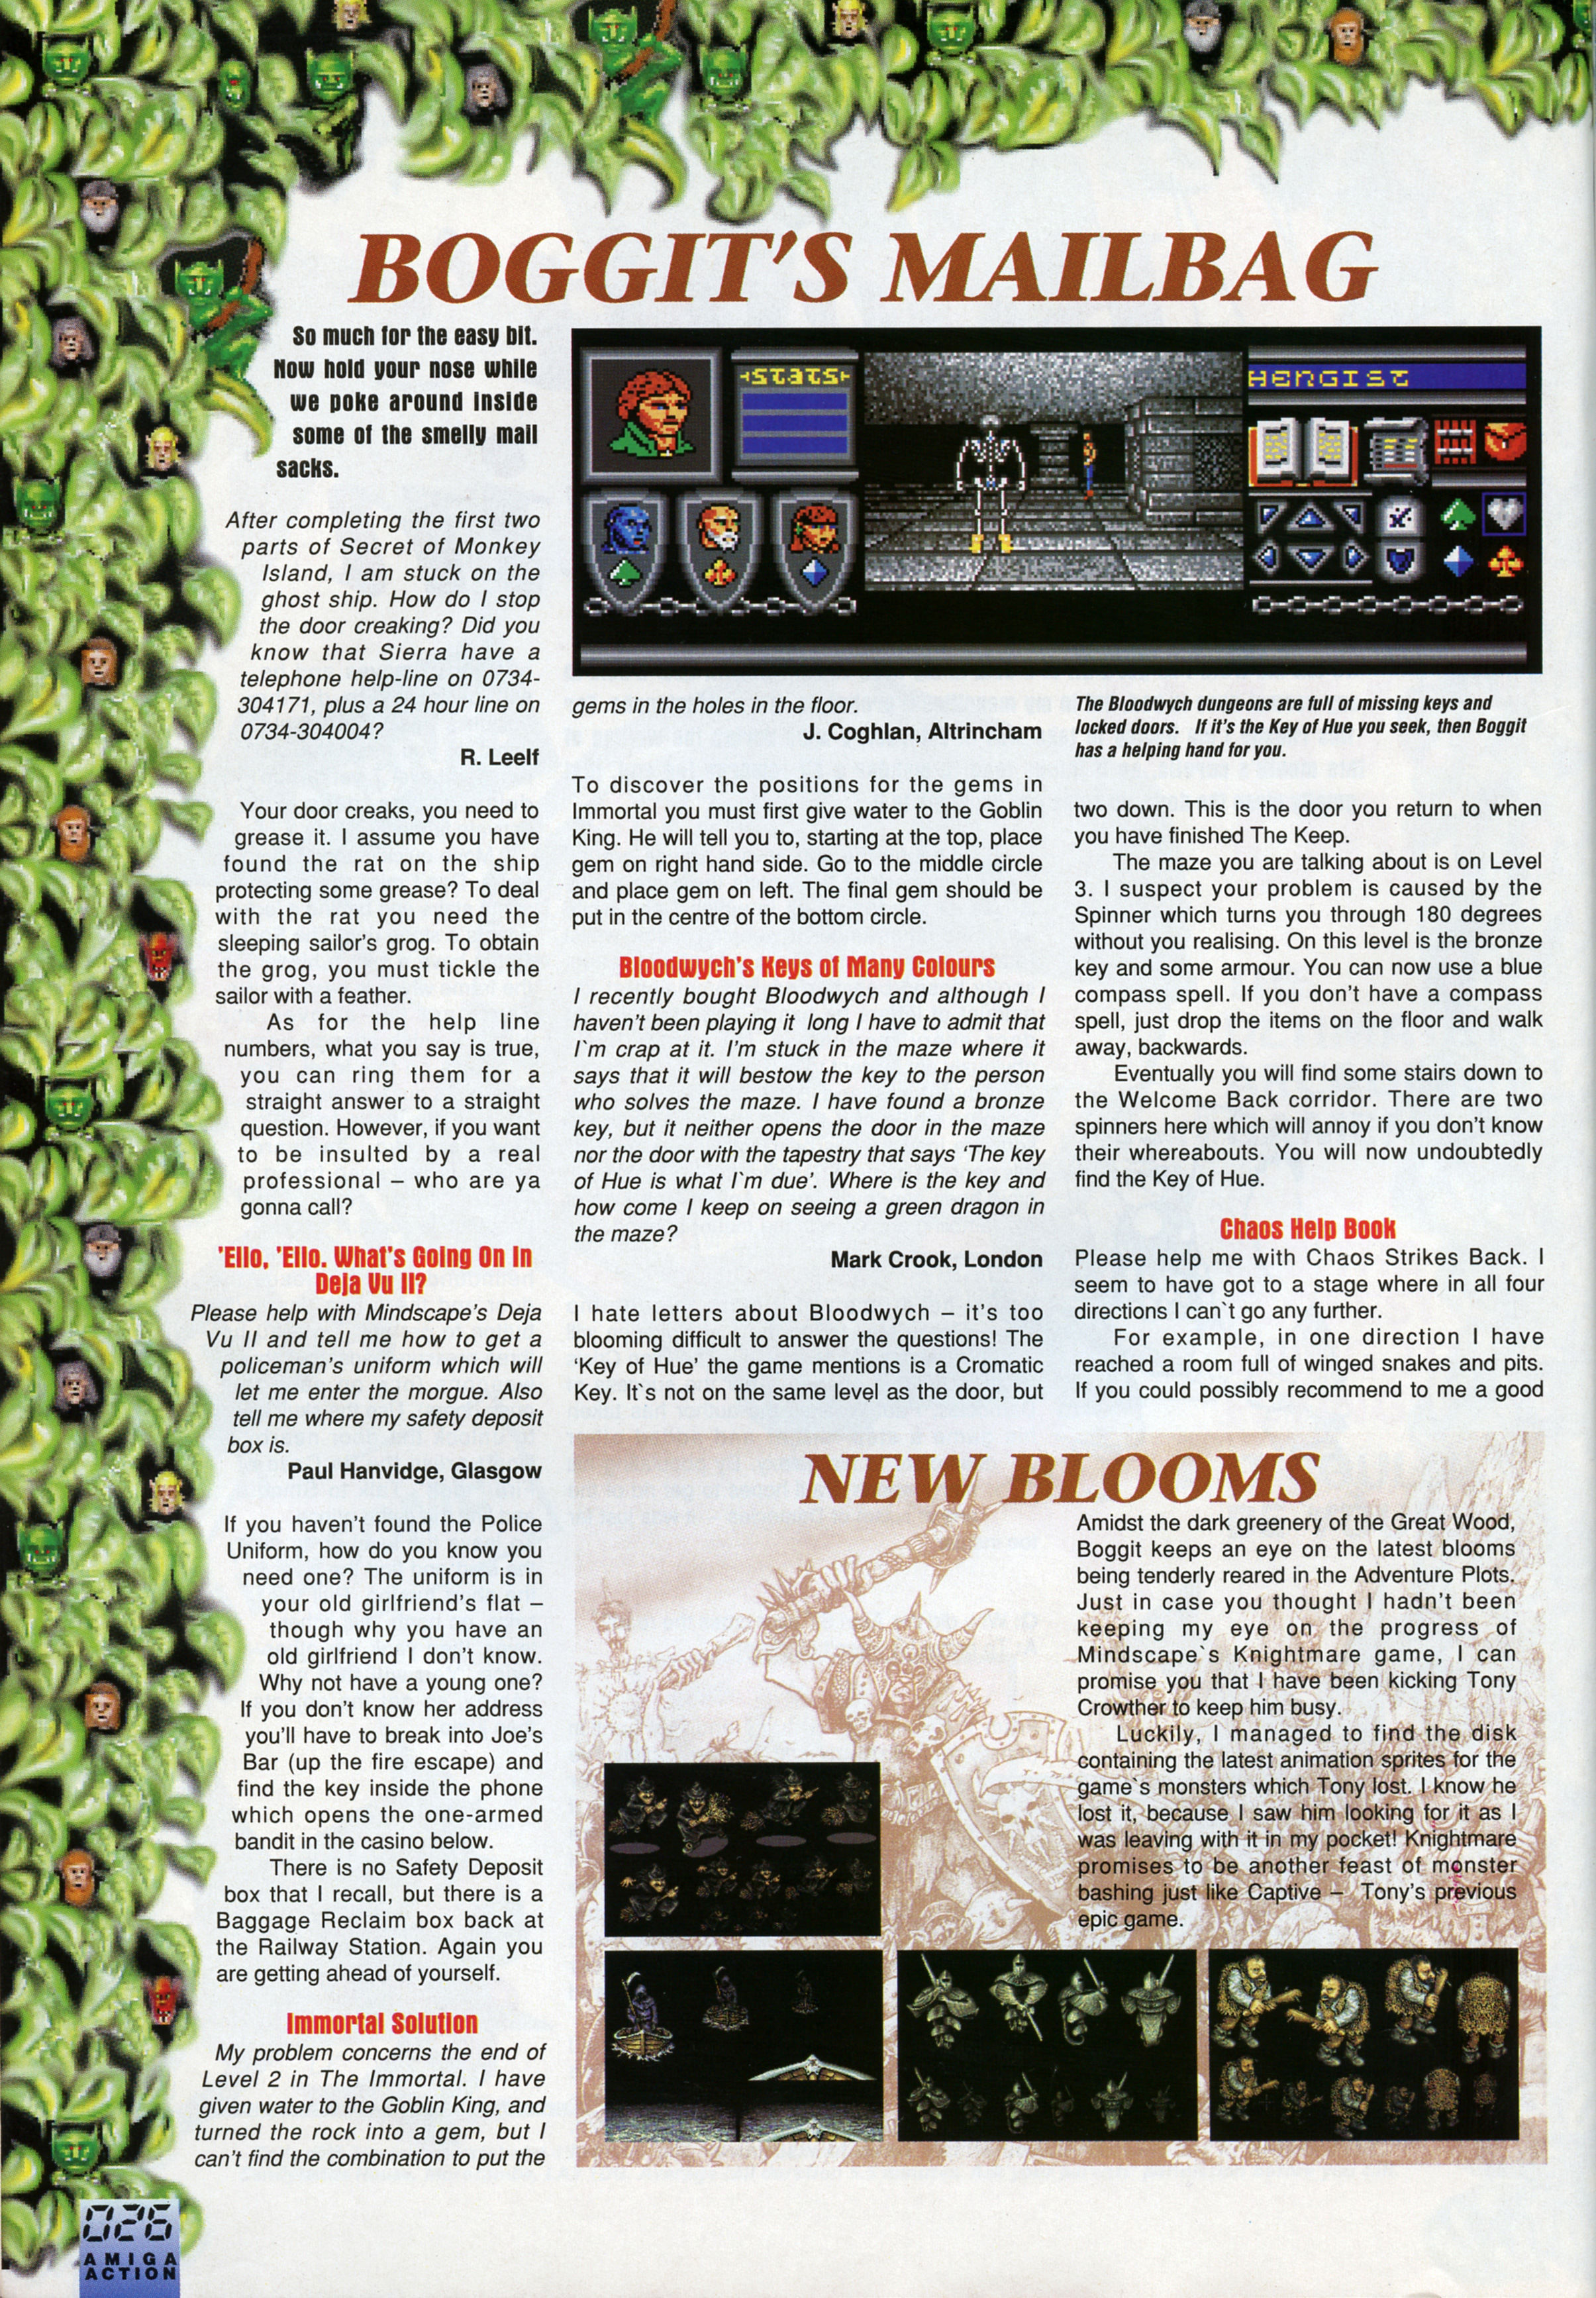 Dungeon Master And Chaos Strikes Back Hints published in British magazine 'Amiga Action', Issue #25 October 1991, Page 26